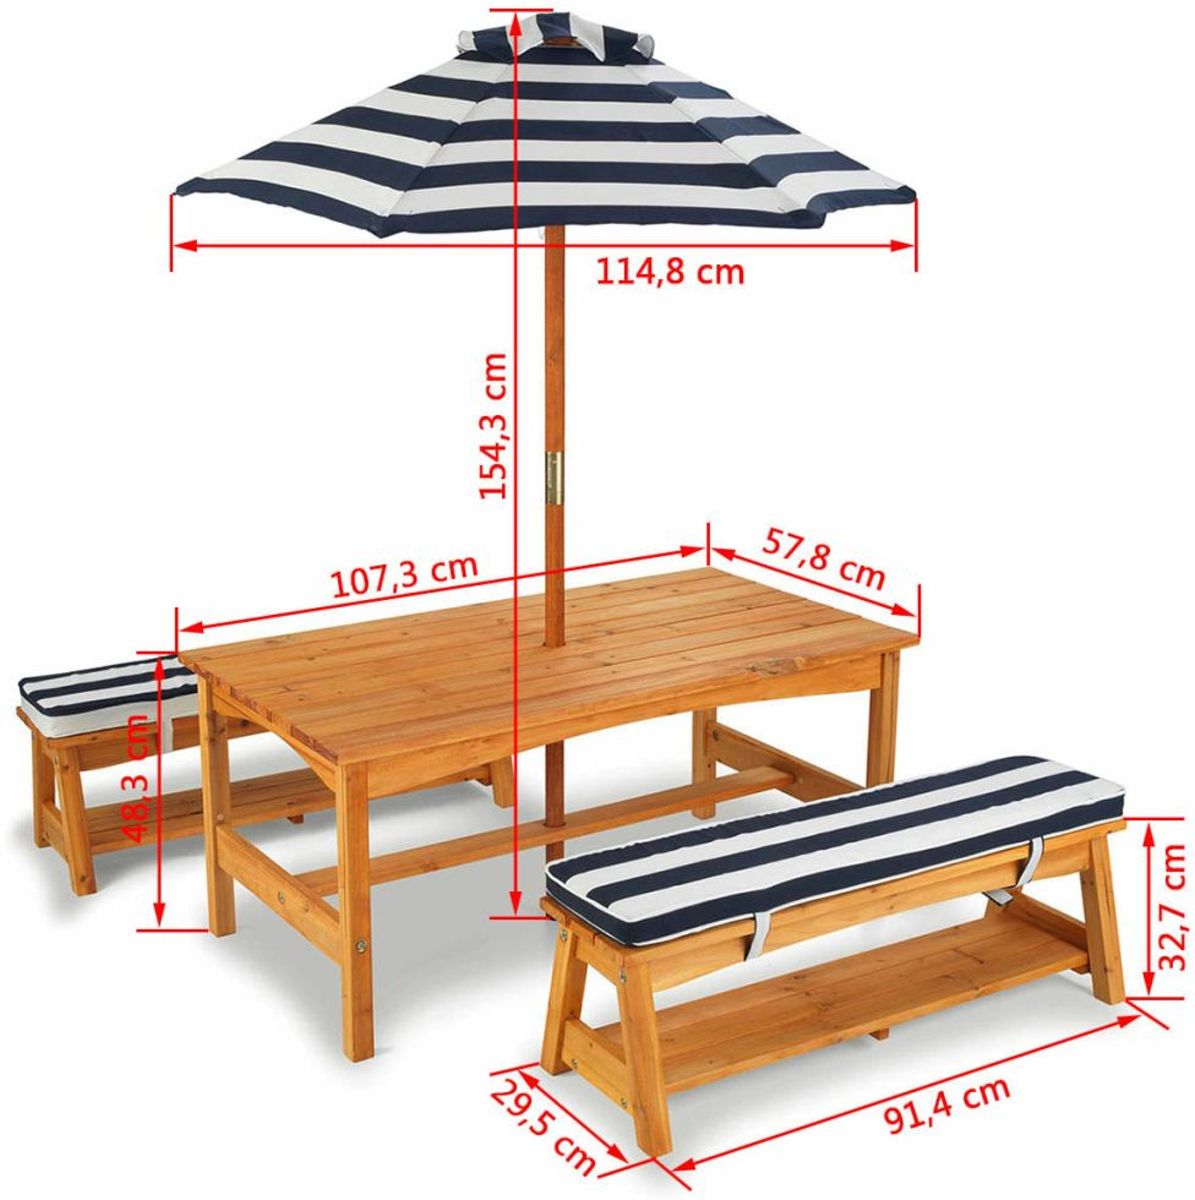 Kidkraft outdoor table bench set with cushions umbrella navy white stripes3